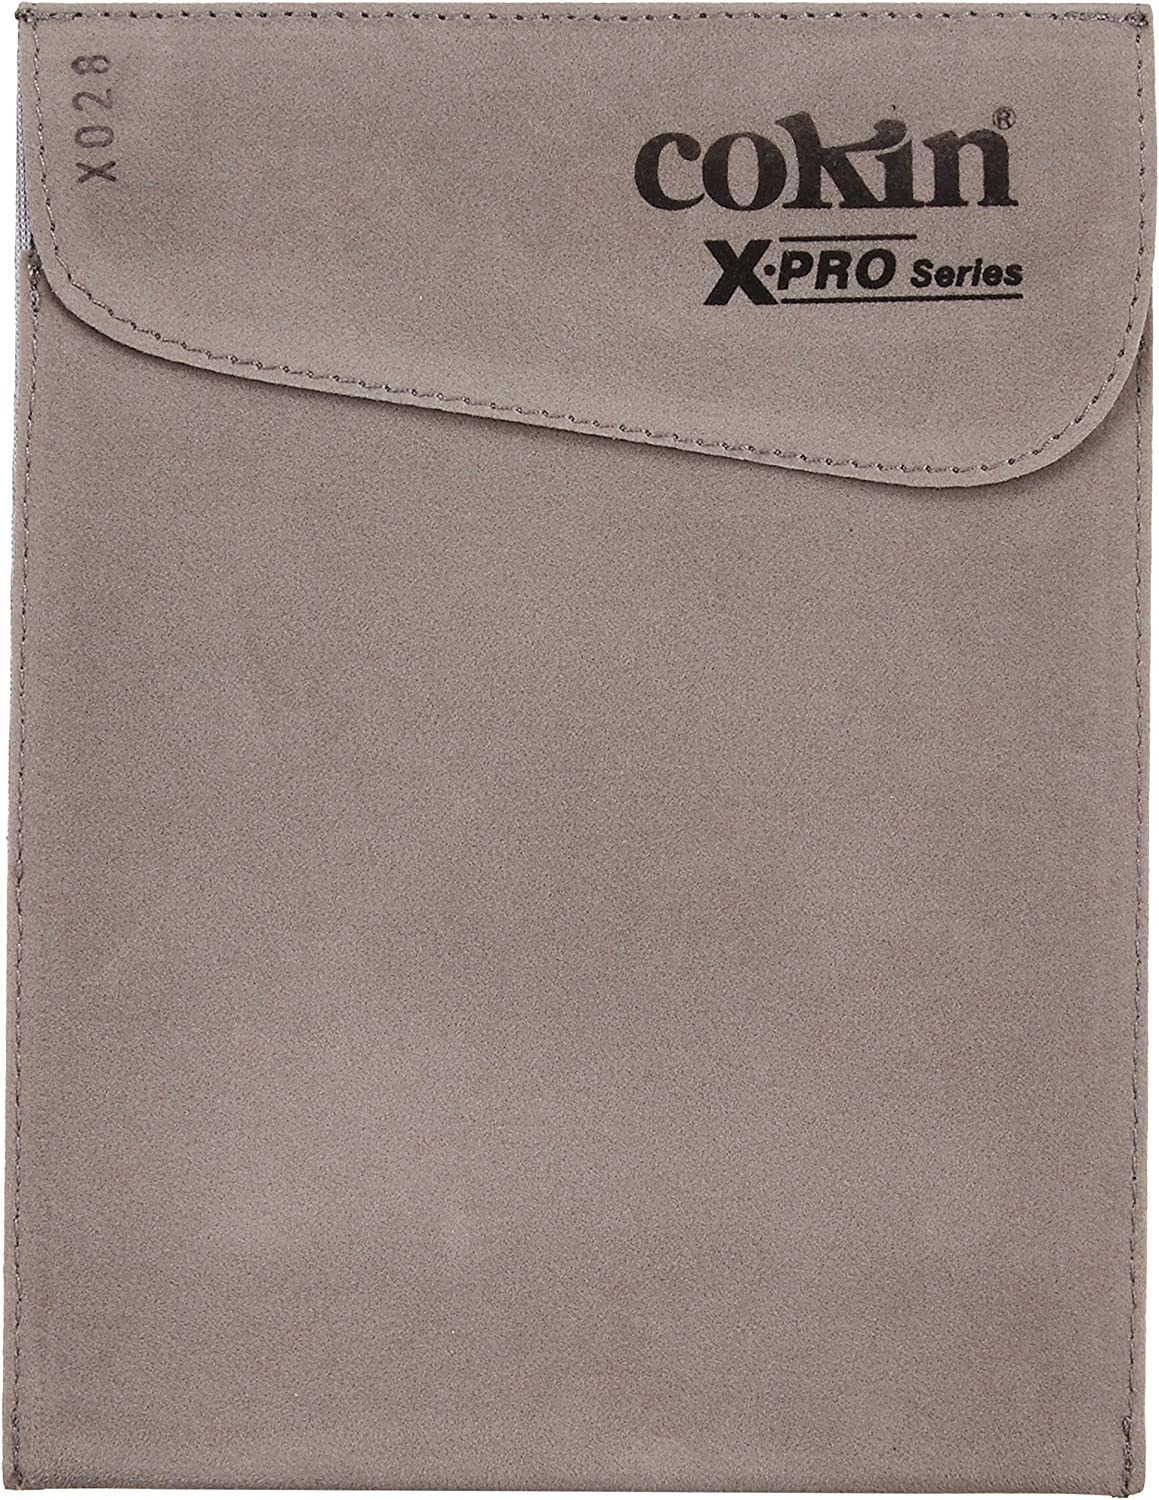 Series Holder X X028 130mm X 130mm - 1//3-Stop for XL Cokin Square Warm 81C